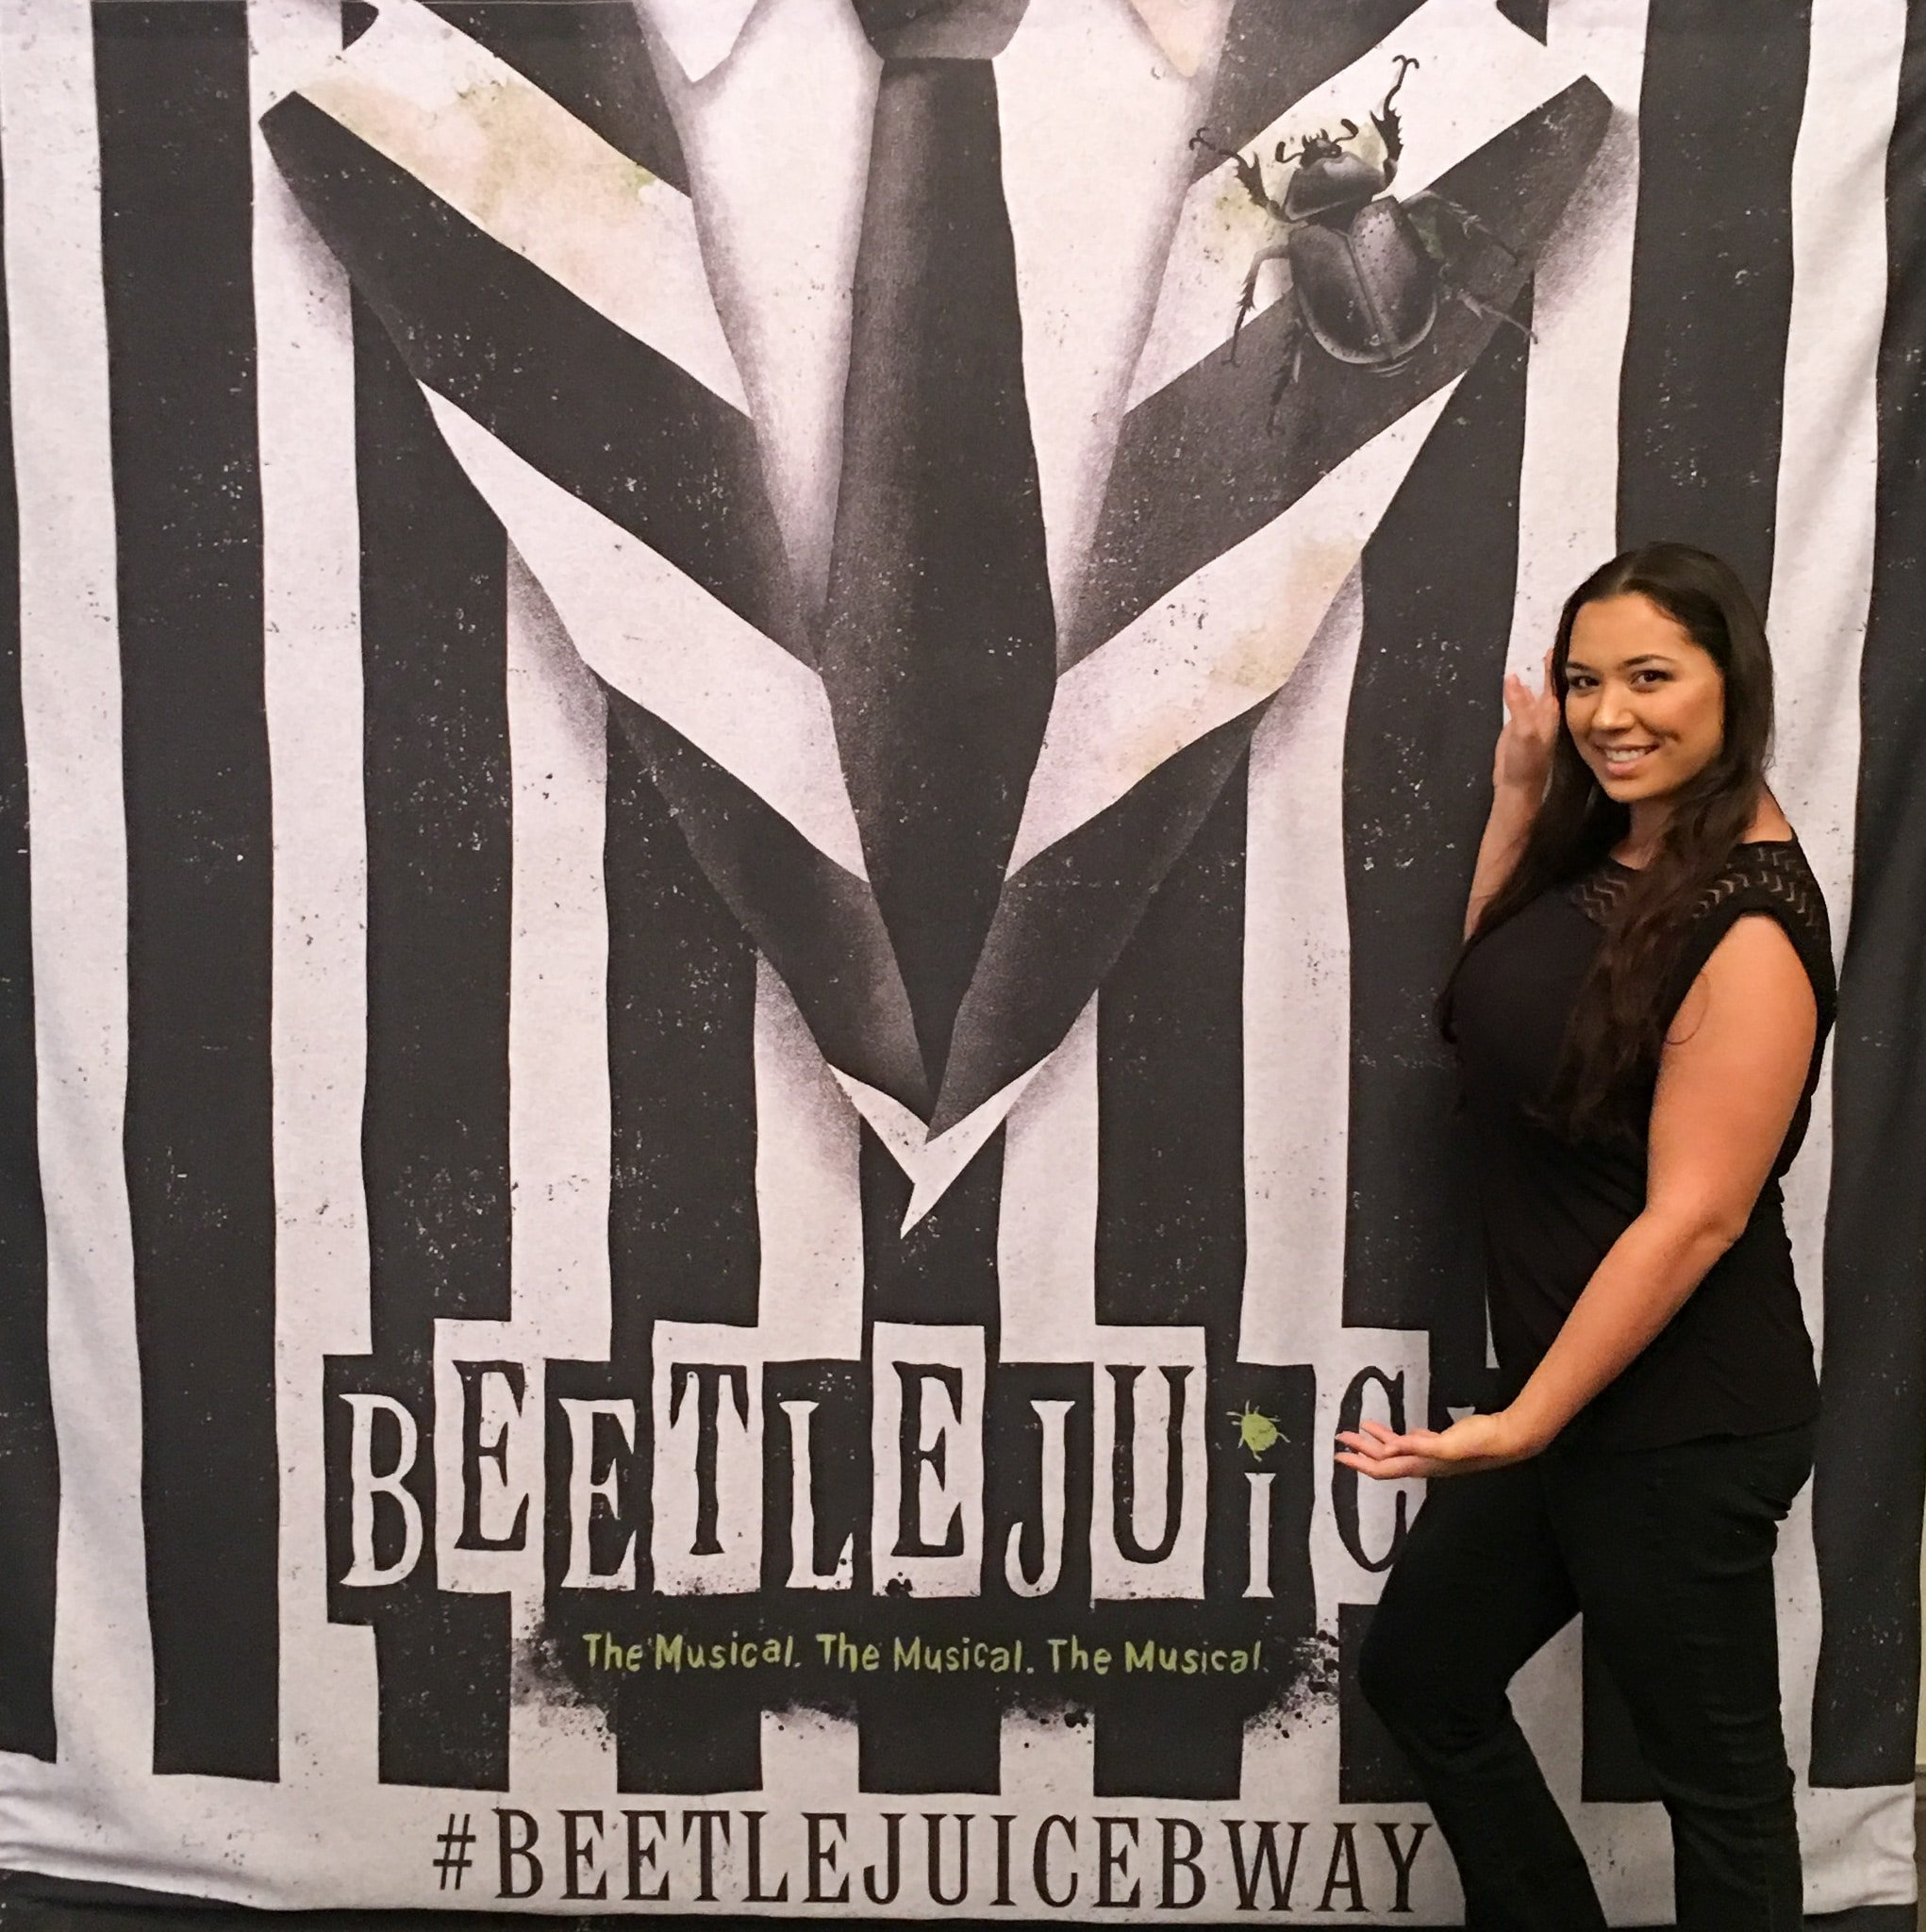 Beetlejuice The Musical Jay. Beetlejuice The Musical will be showing at the National Theater in DC Now till Nov 18, 2018. Follow this Raunchy humorous musical as you explore the world of Beetlejuice even deeper than the previous movie showed.